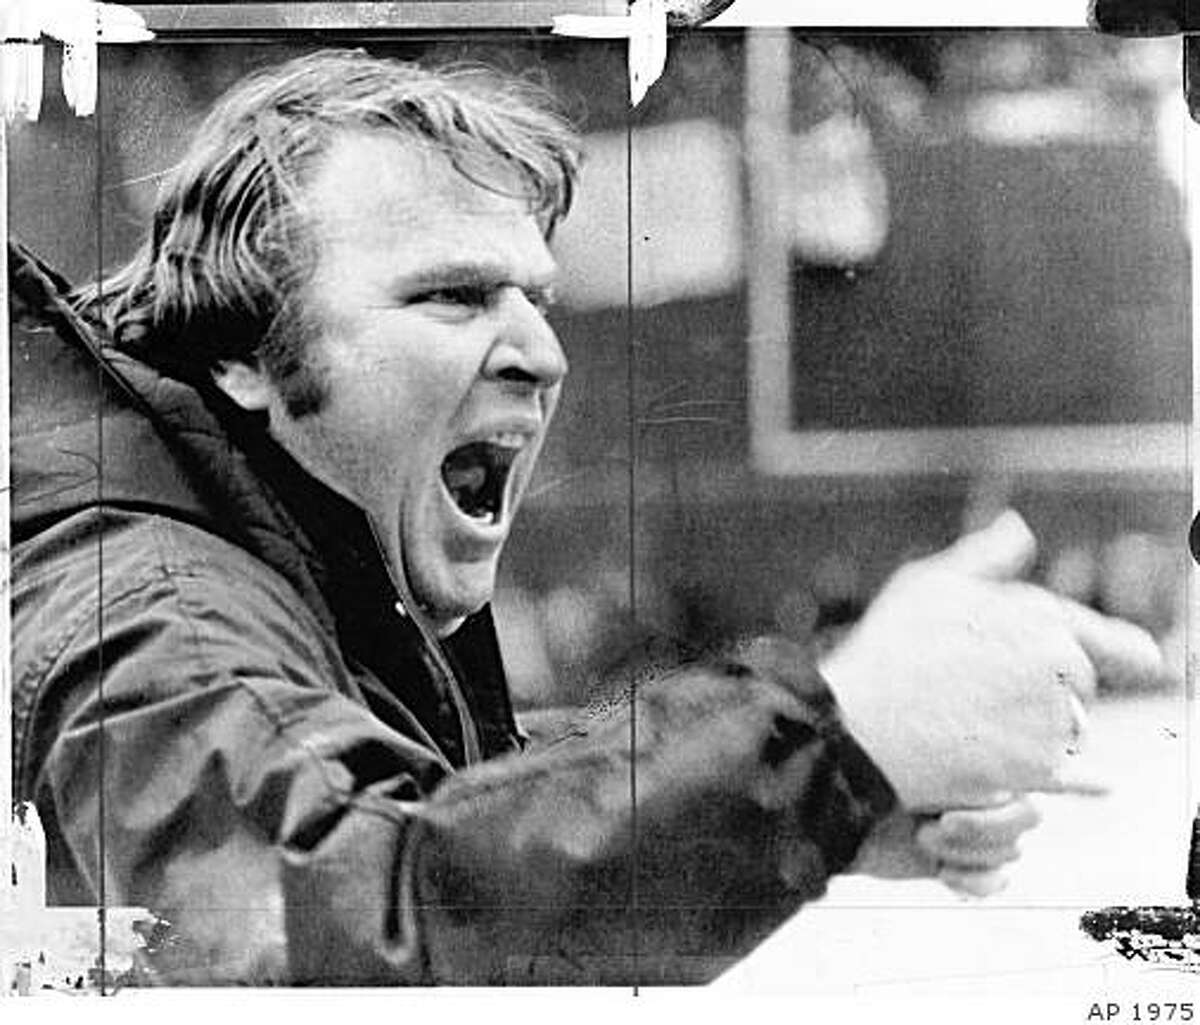 John Madden shouts from sidelines.